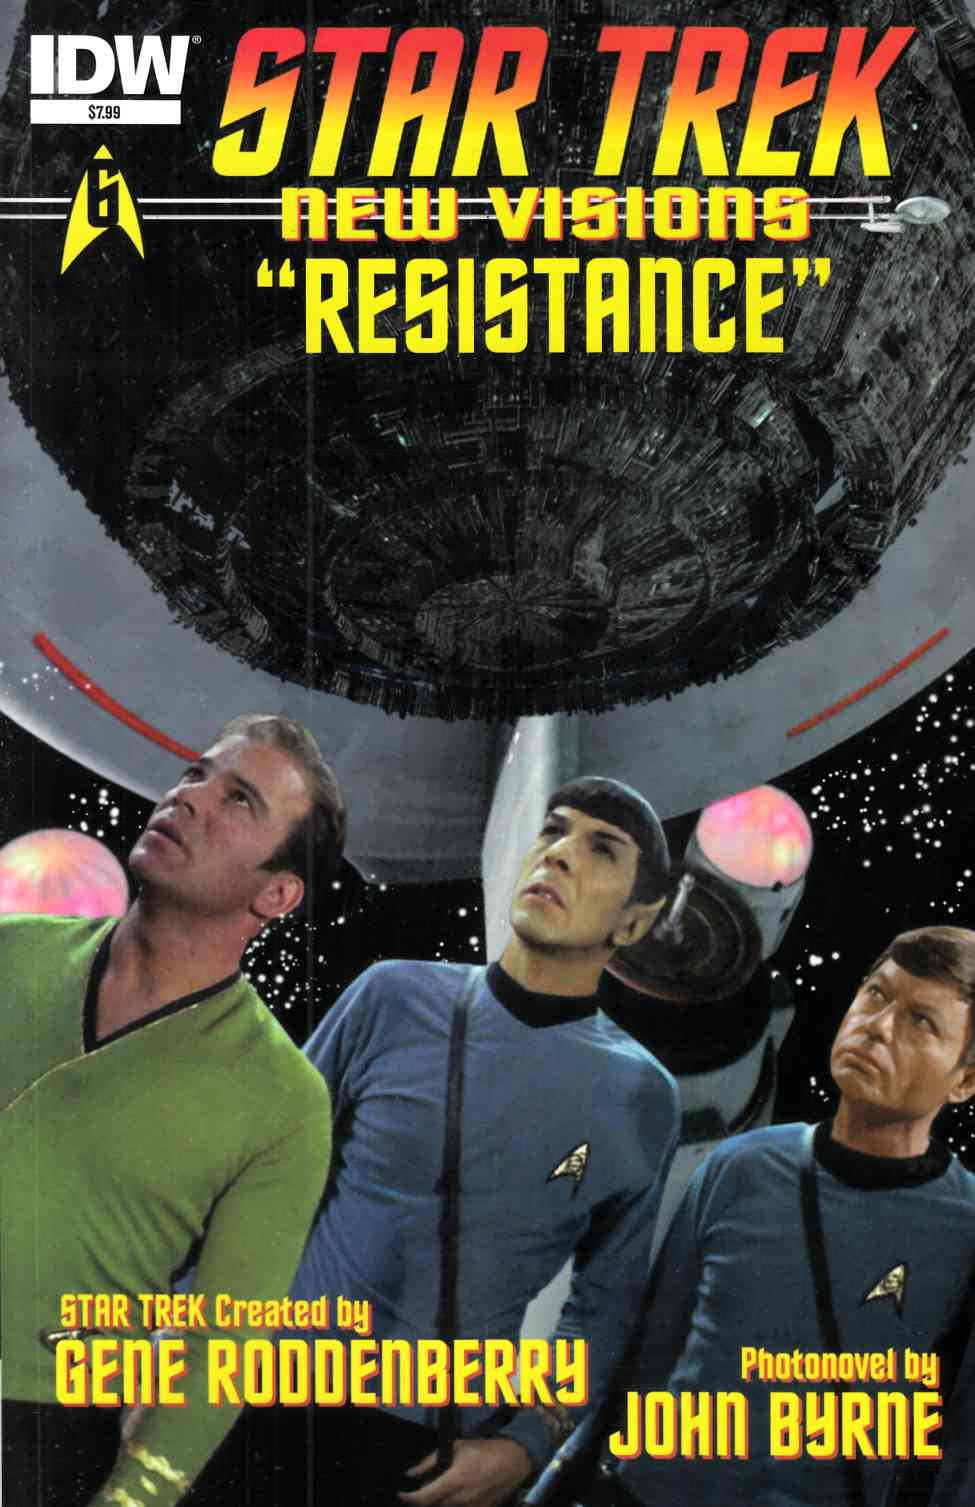 Star Trek New Visions Resistance (One Shot) [IDW Comic] THUMBNAIL